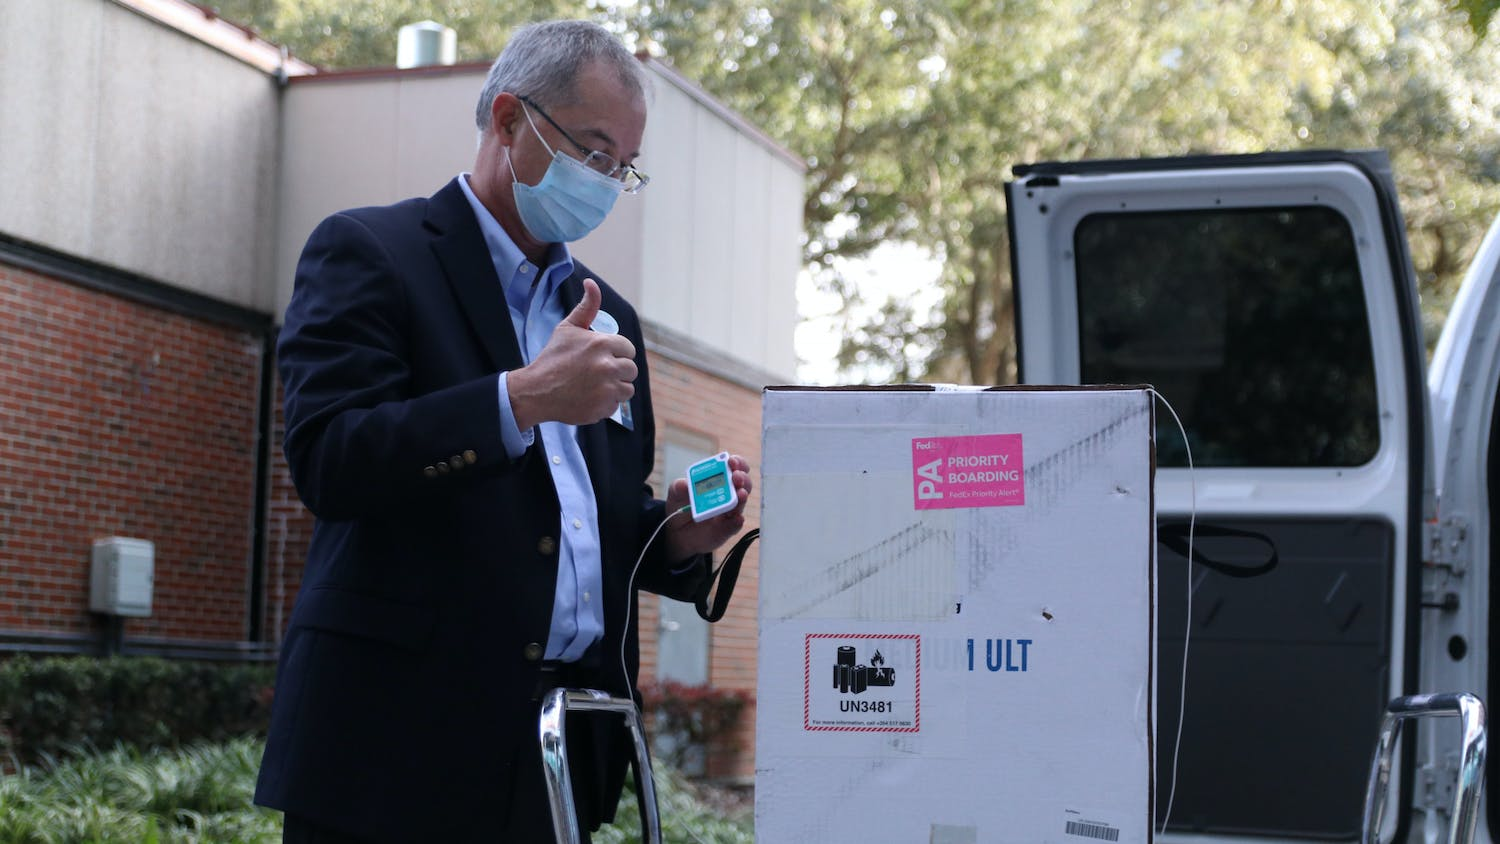 Thomas Johns, Director of Pharmacy Services at UF, gives a thumbs up after displaying the thermometer to the press. The Pfizer-BioNTech COVID-19 vaccine has to be stored at ultracold temperatures.